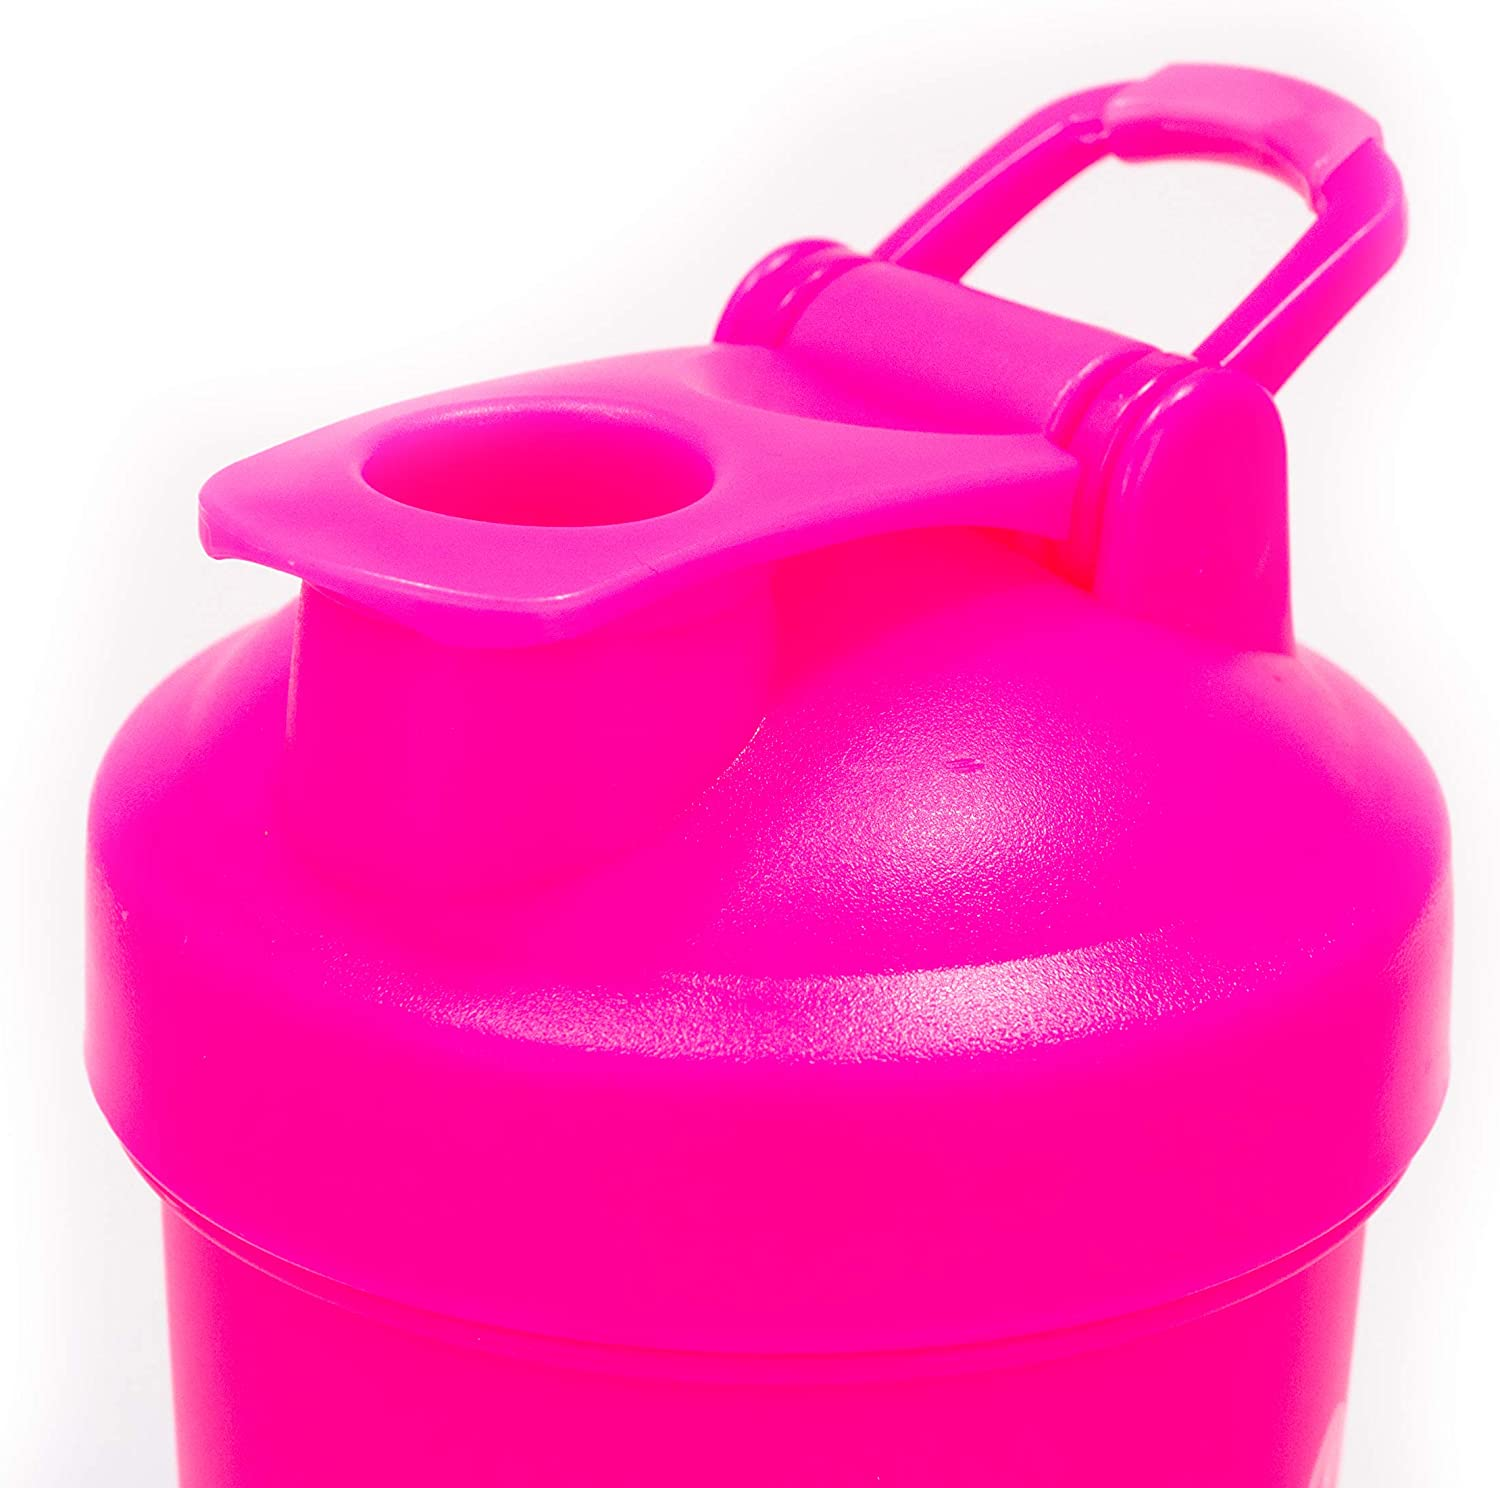 Idouma Protein Shaker Bottle w/Straw 20 oz Pink | Tumbler Mixer Blender w/Ball Loop Top | Spill and Leak Proof | Great Bottle for Workouts and Exercise Mixes